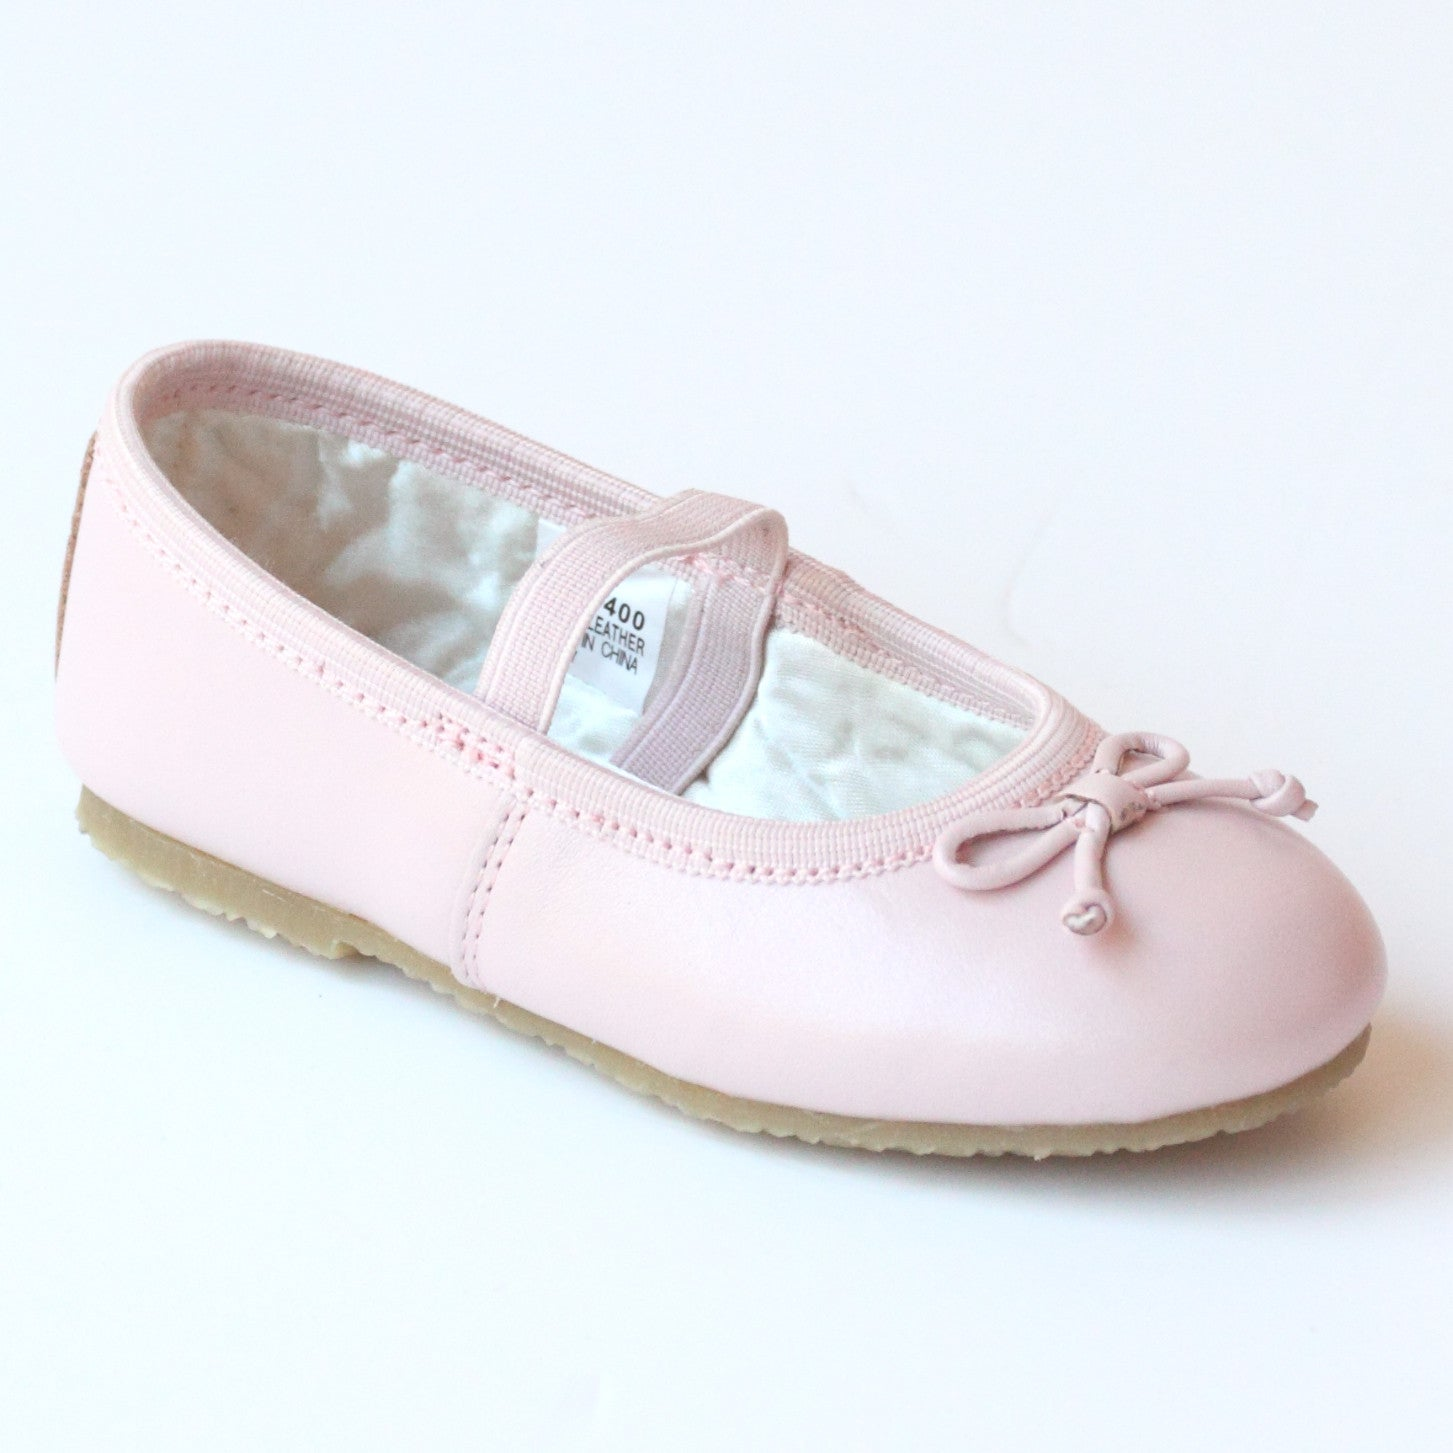 L'Amour Girls 400 Pink Bow Leather